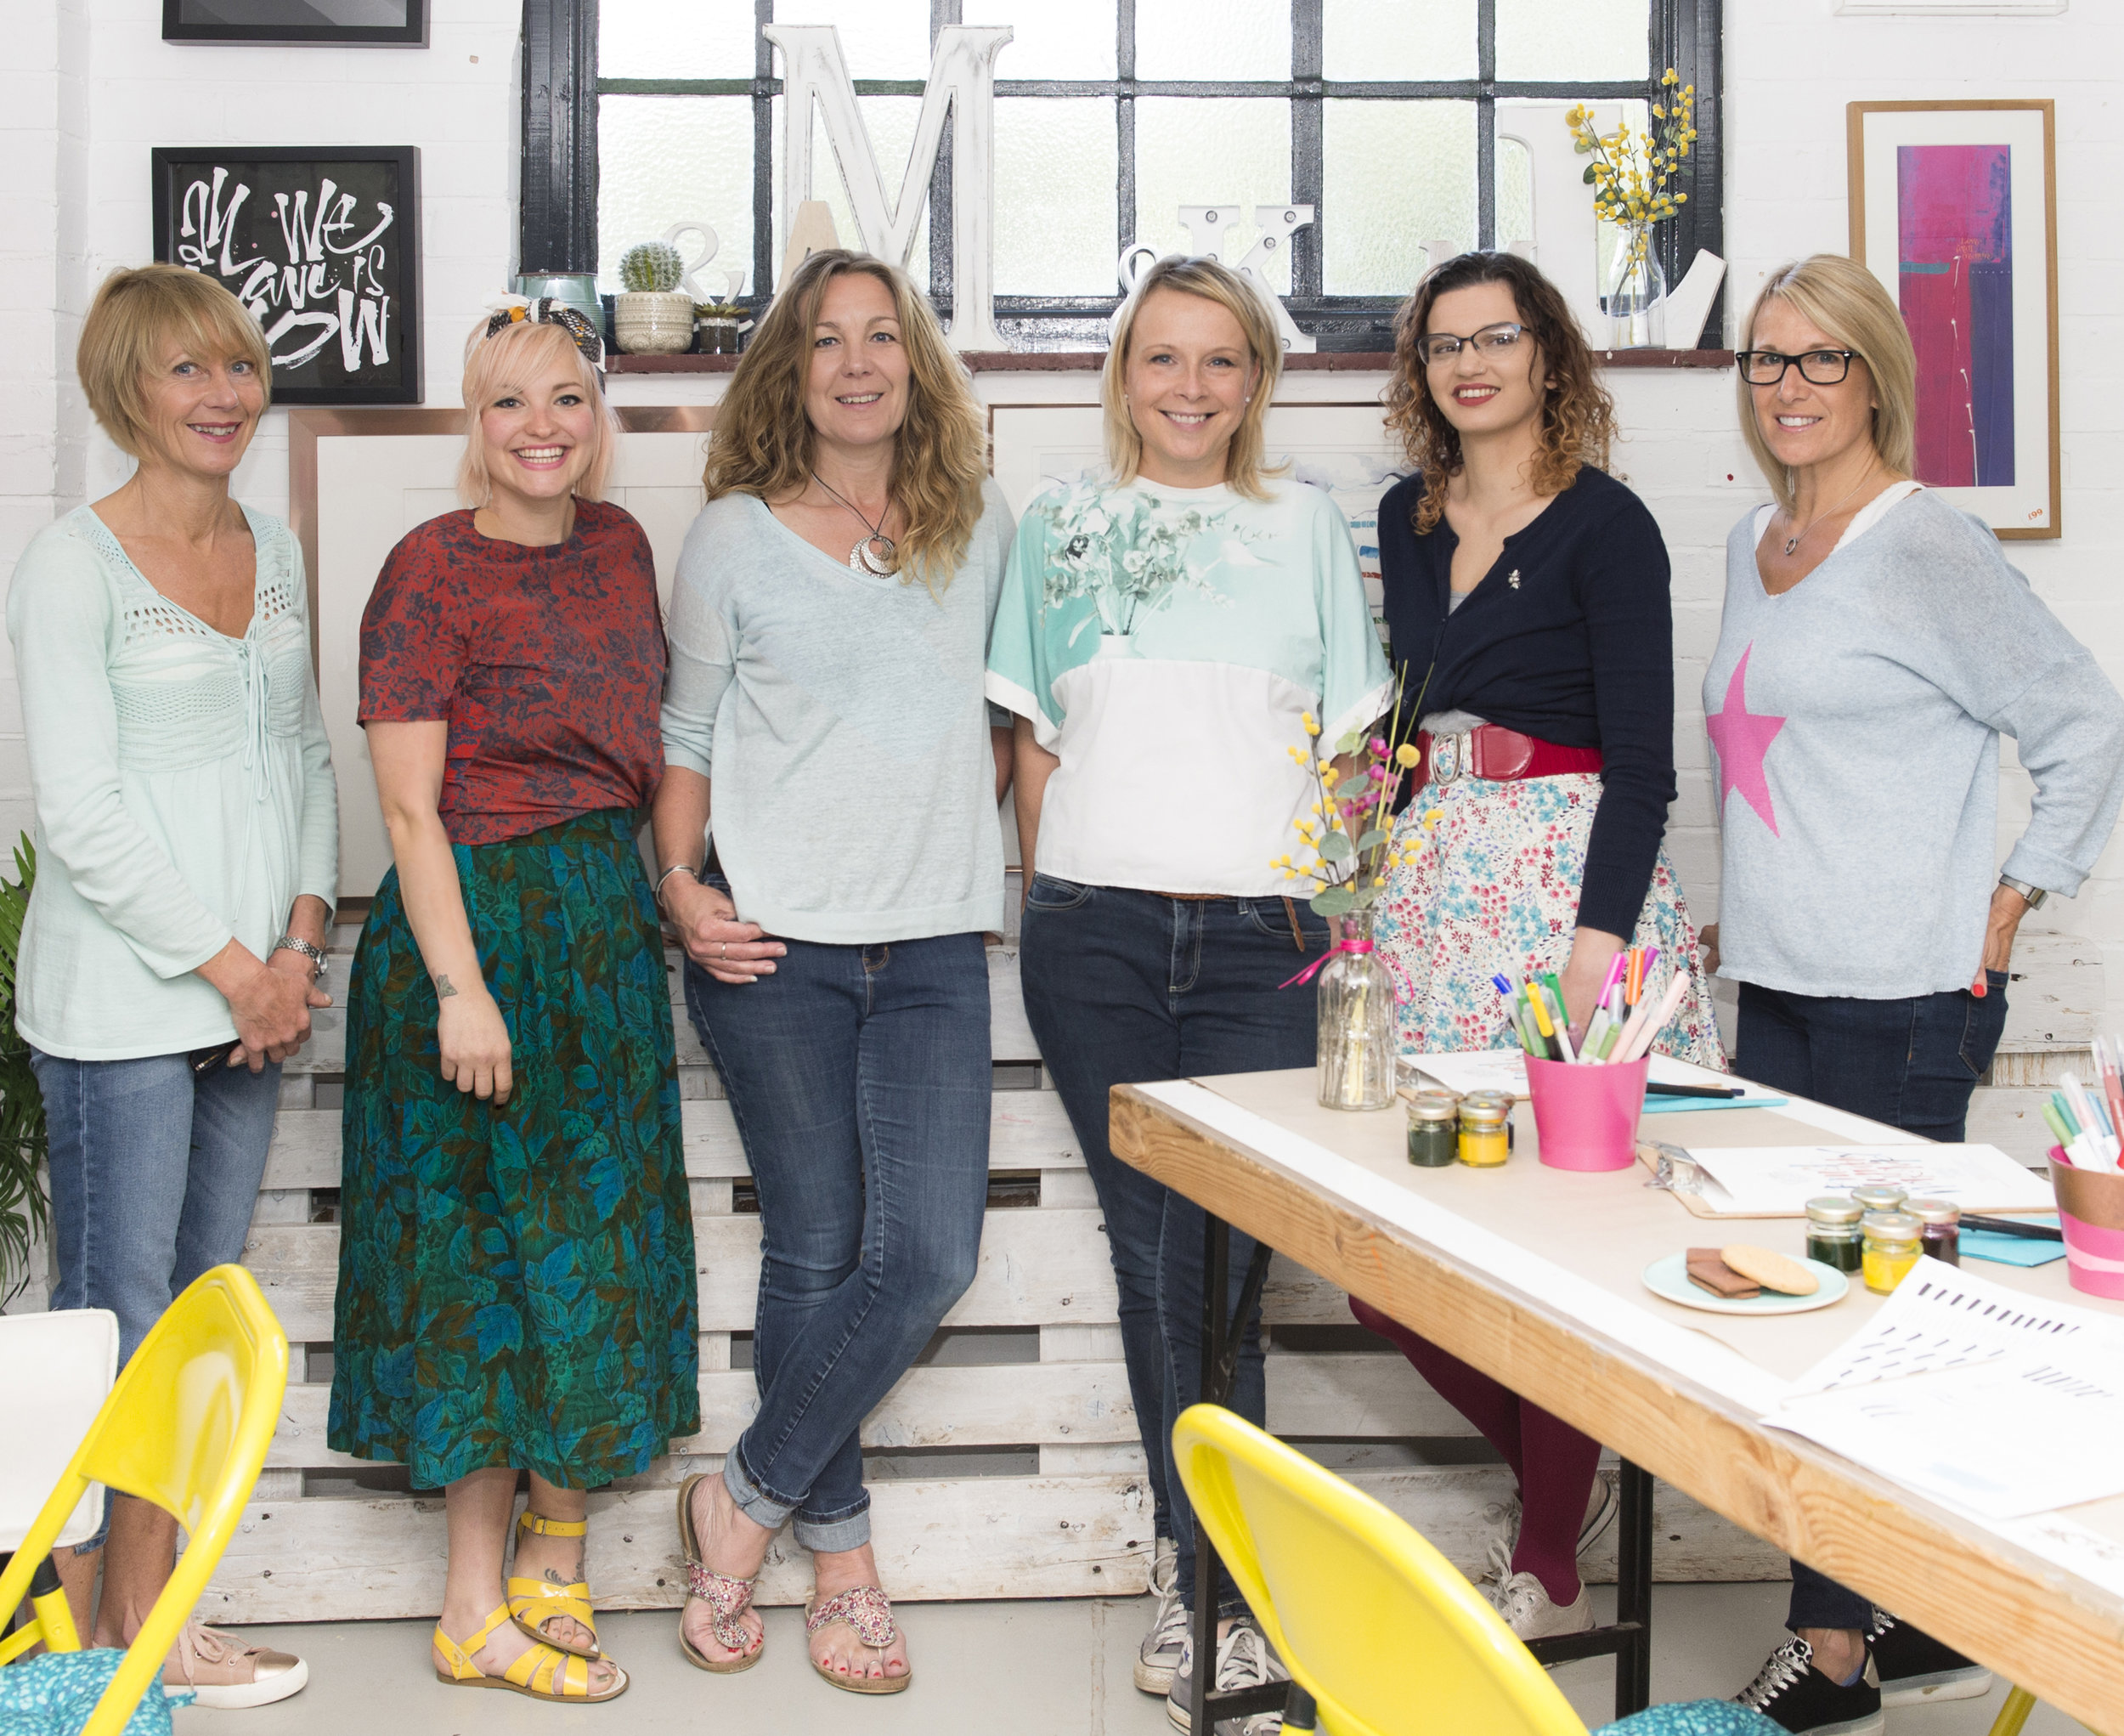 The team at The Modern Calligraphy Company